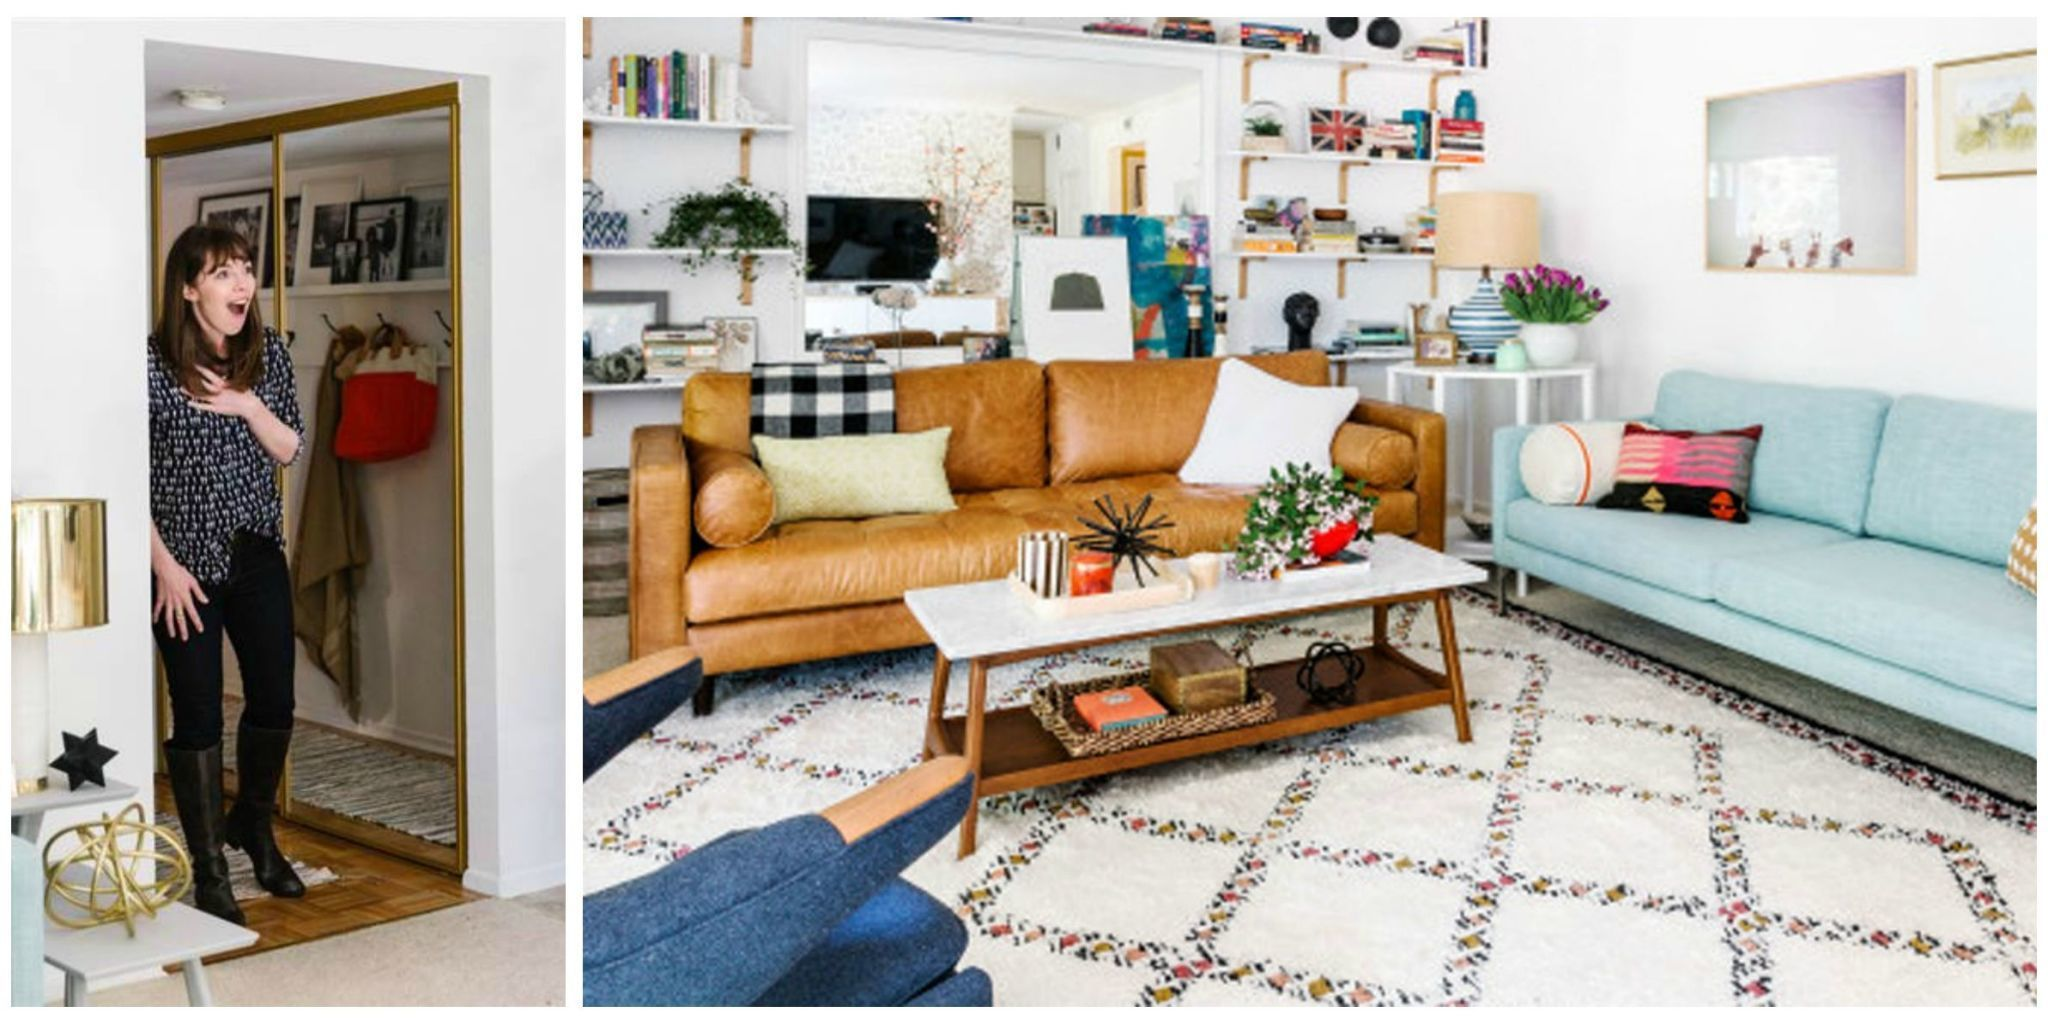 This Young Widow Got a Cheerful Home Makeover, Courtesy of Her Twin Sister